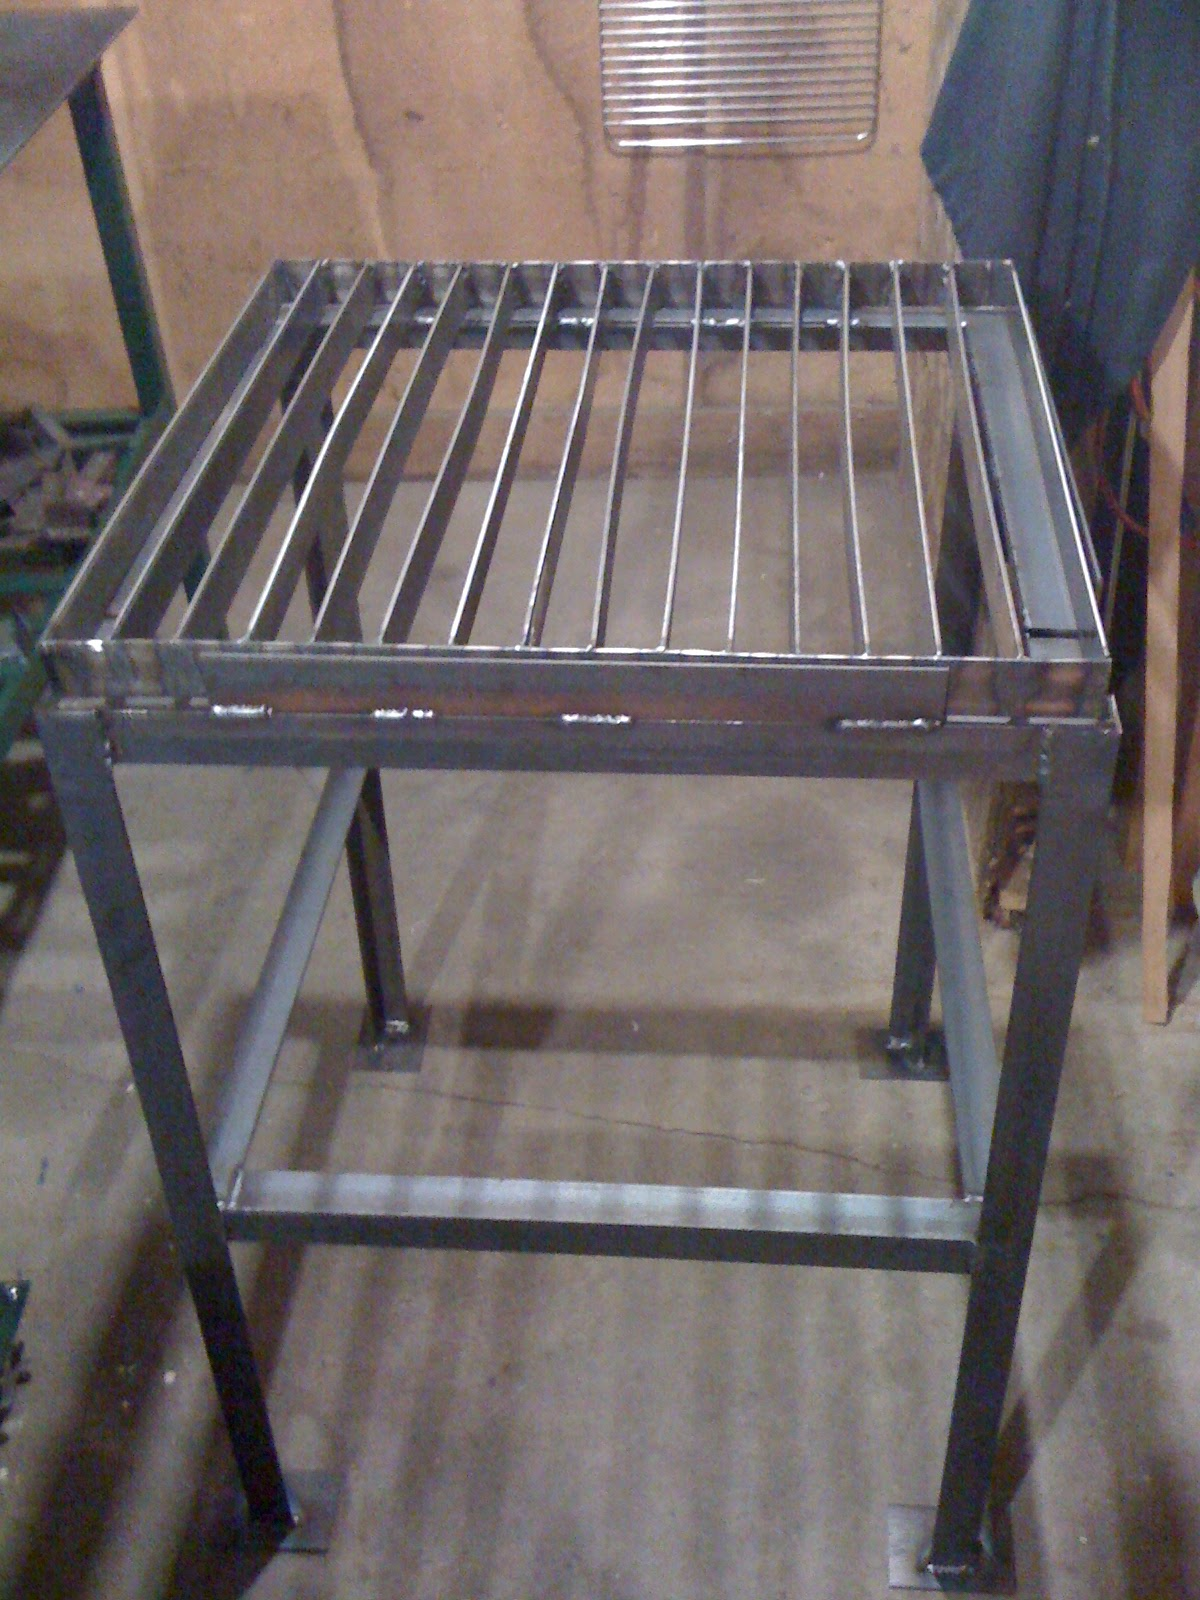 My Open Source Projects: Plasma Cutting Table